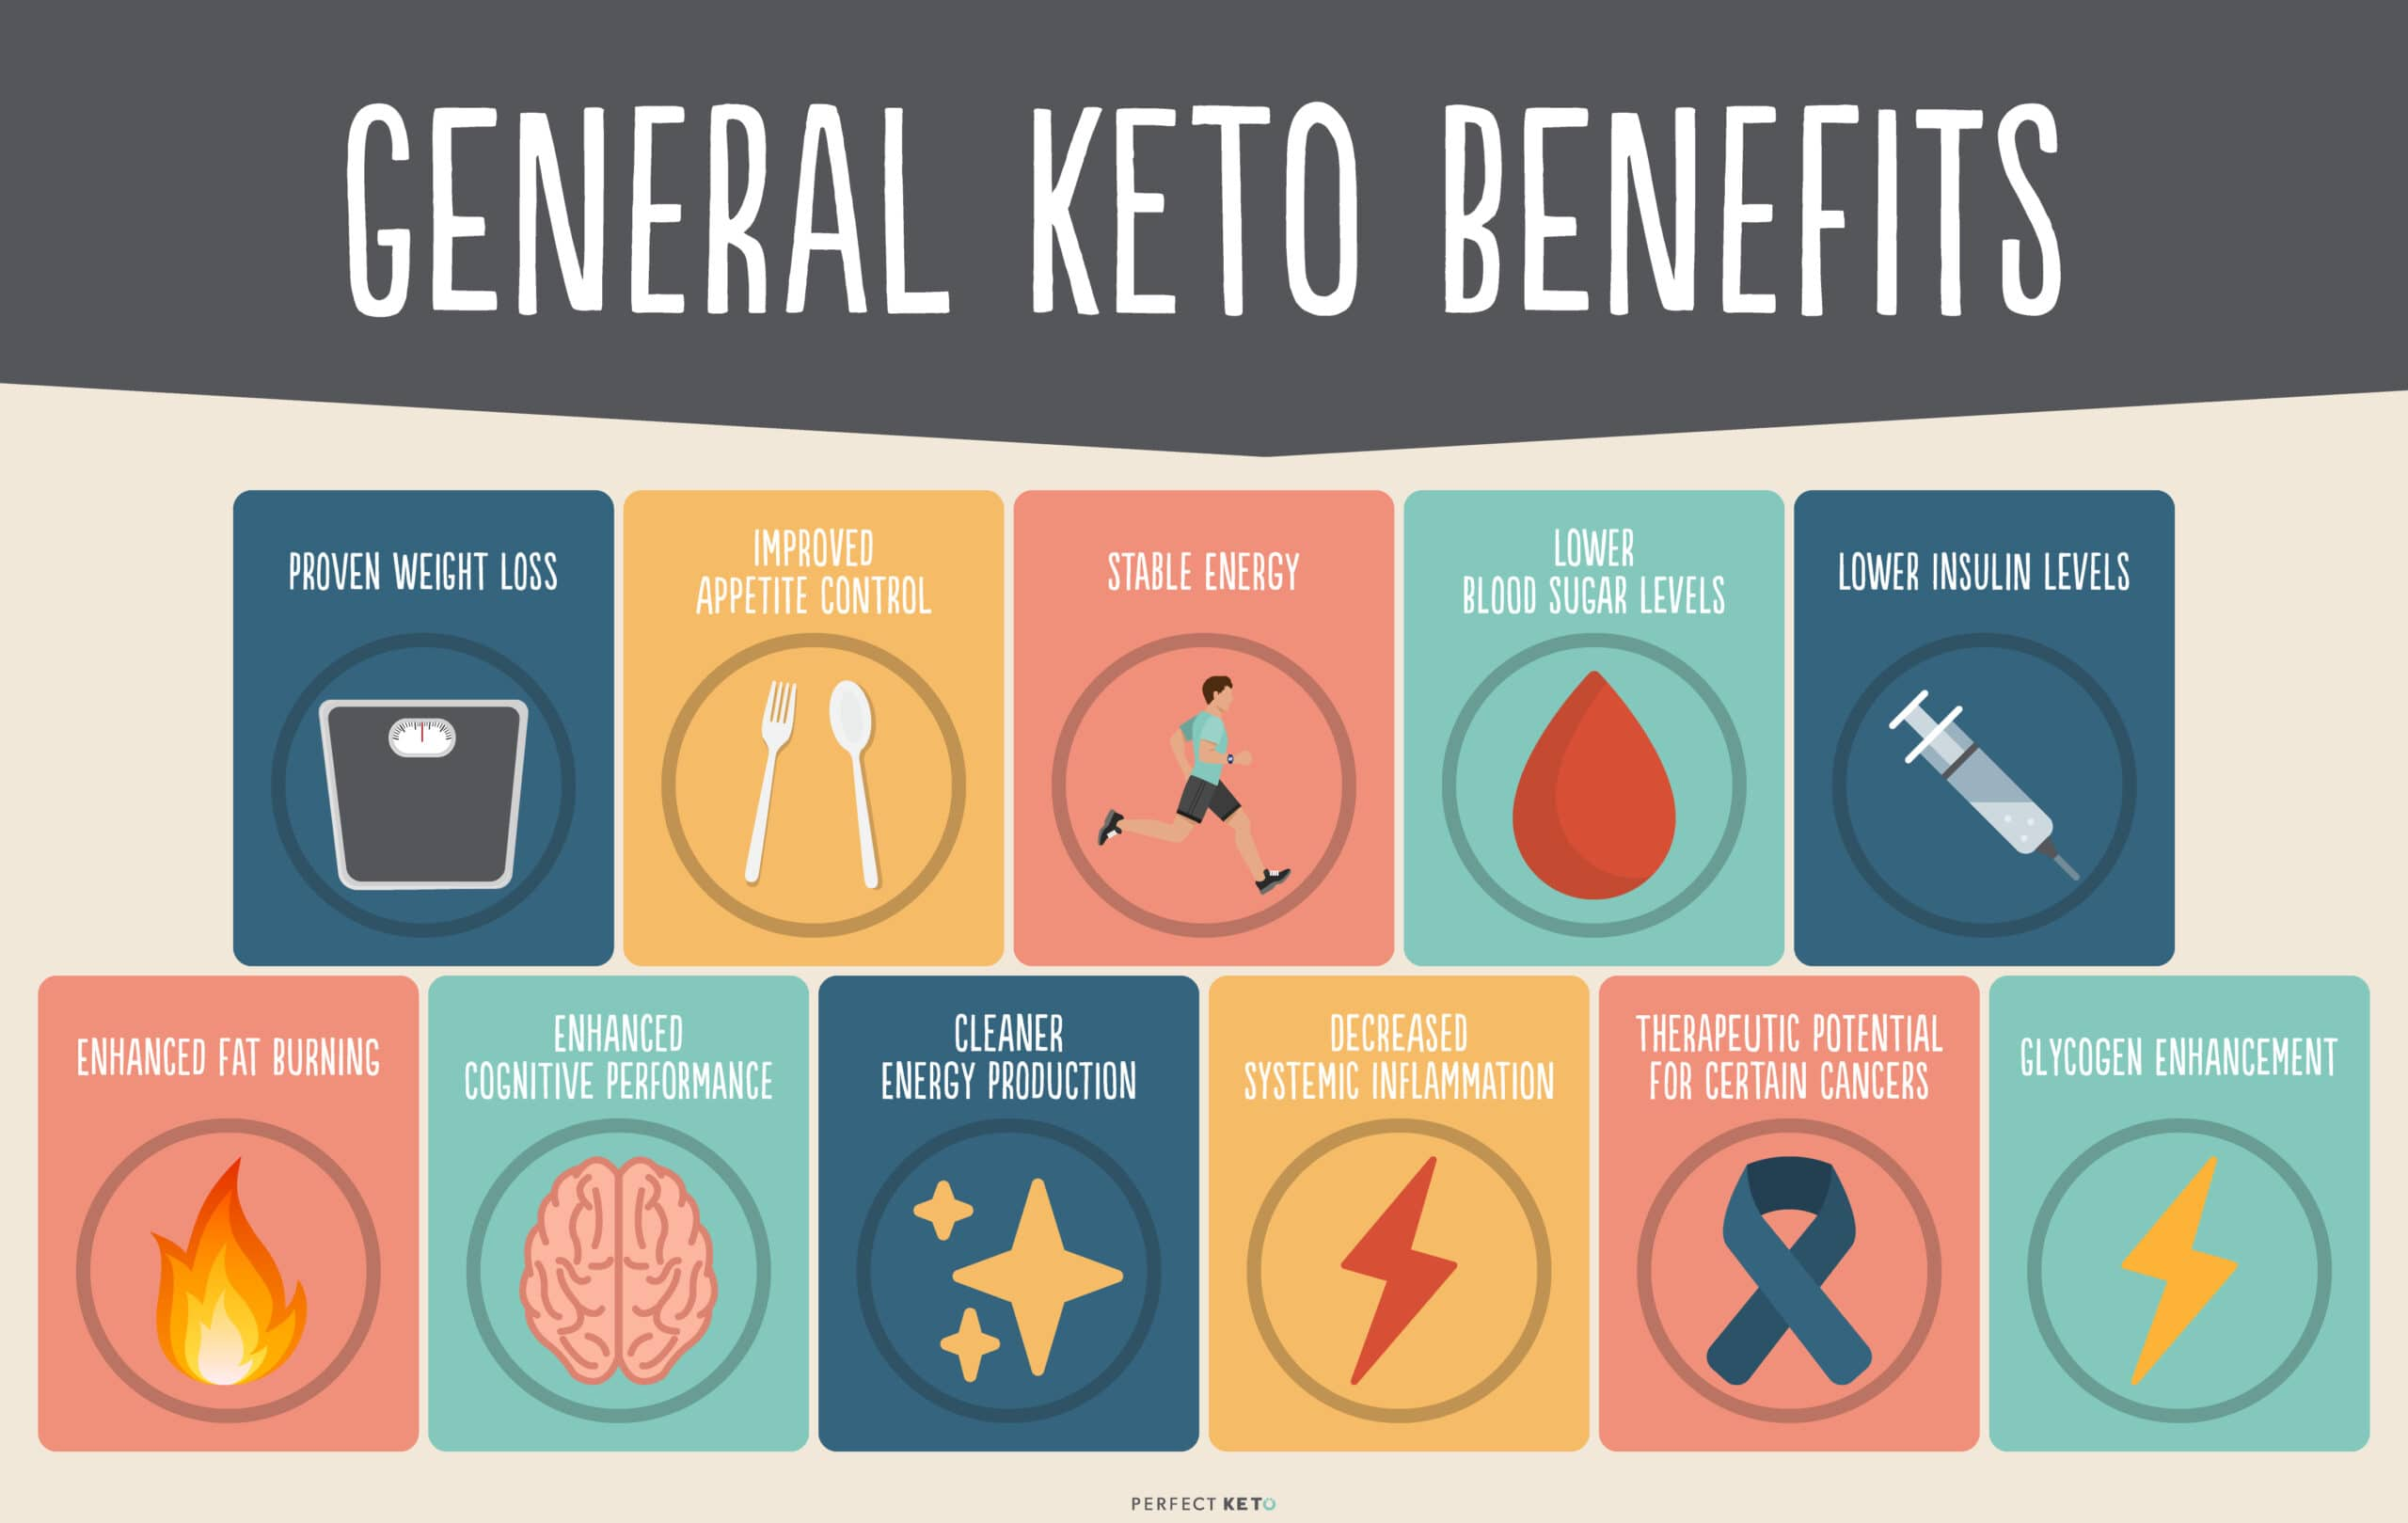 7 Benefits of The Keto Diet